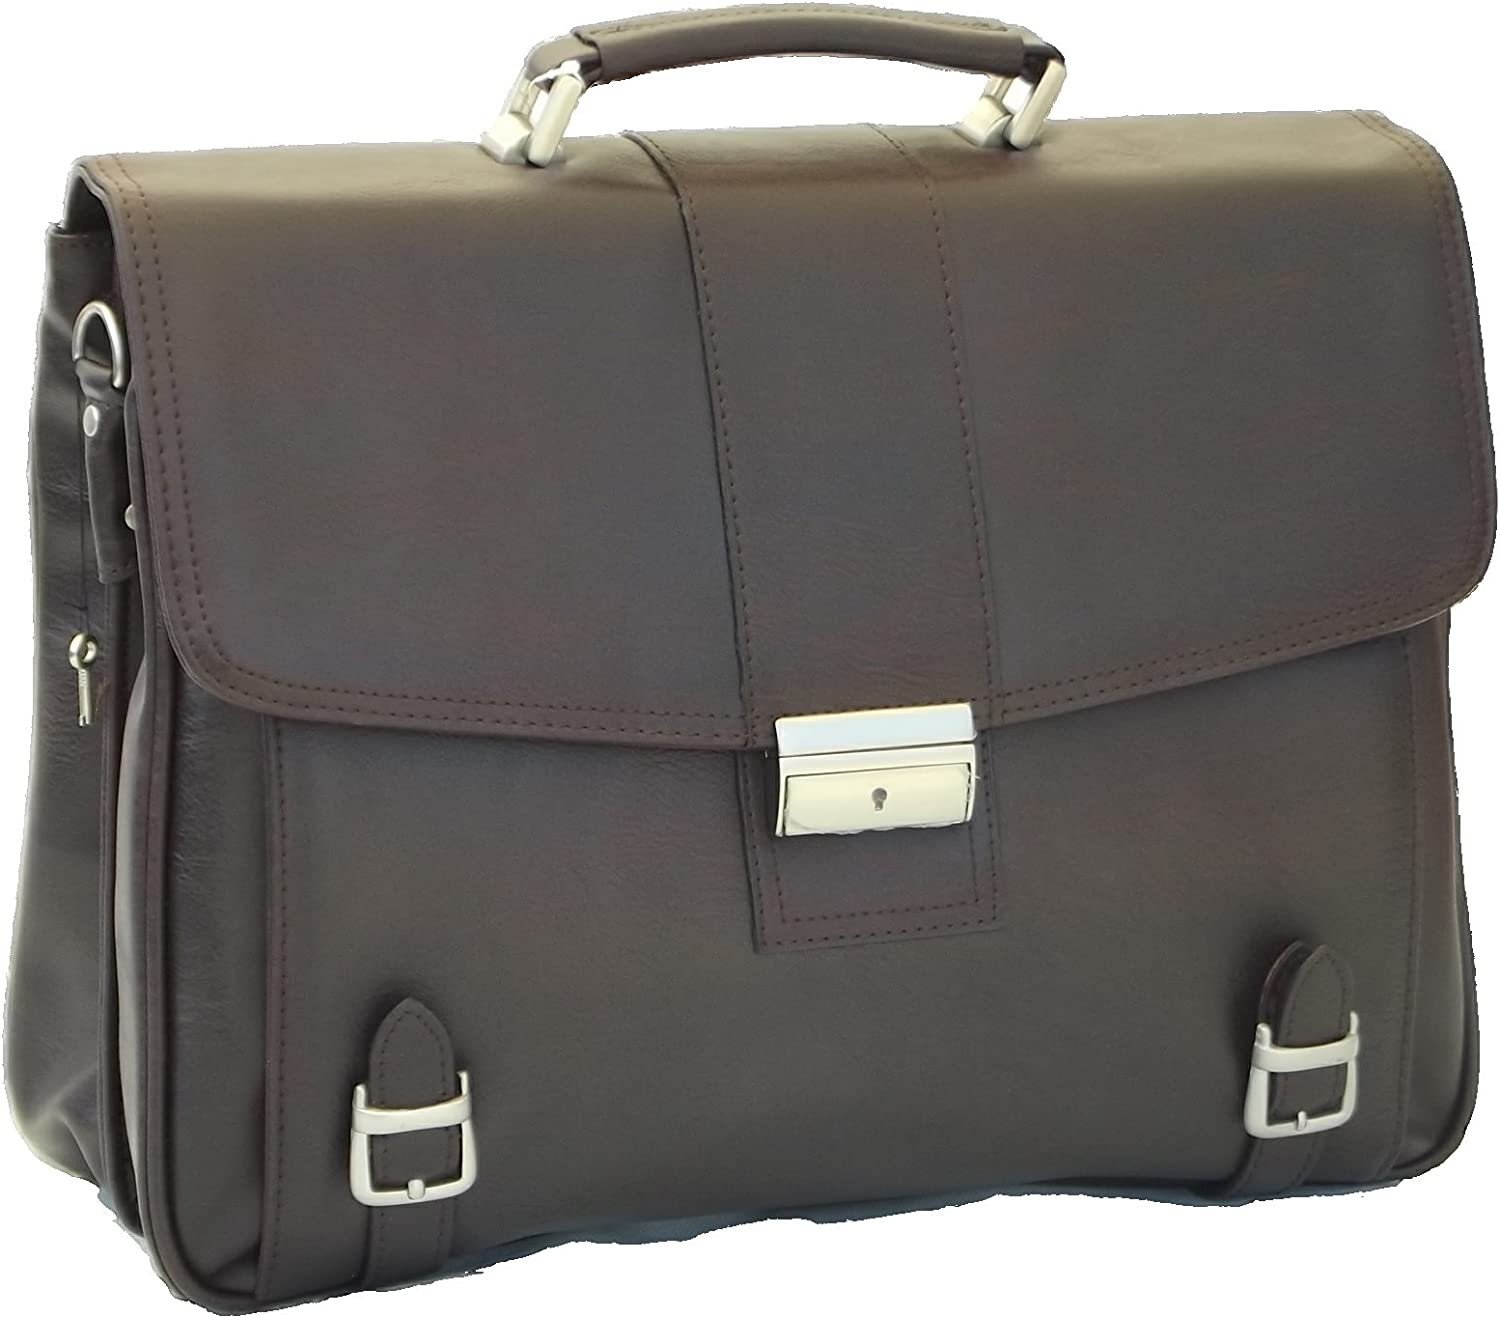 Faux Leather BriefcaseCarry Laptop Bag (Double Gusset, Brown)